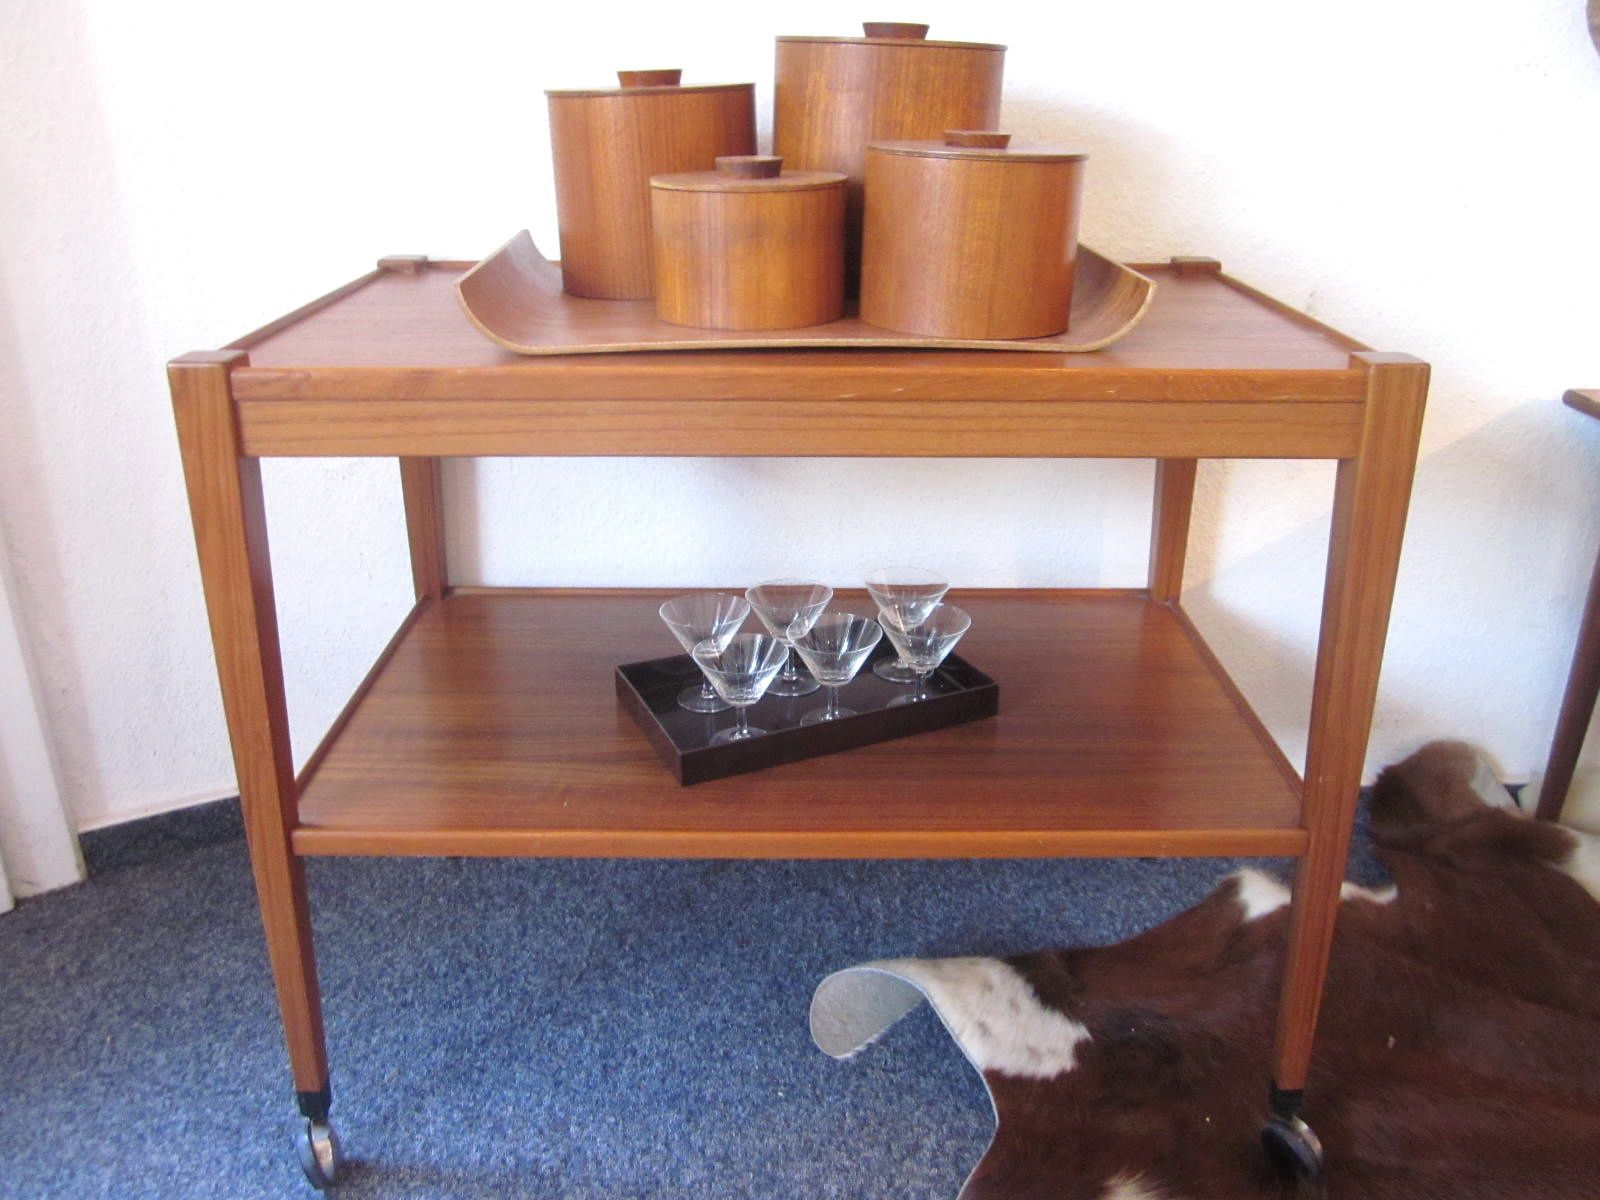 Lidded boxes (Denmark) on serving cart (Sweden) - both 50s.